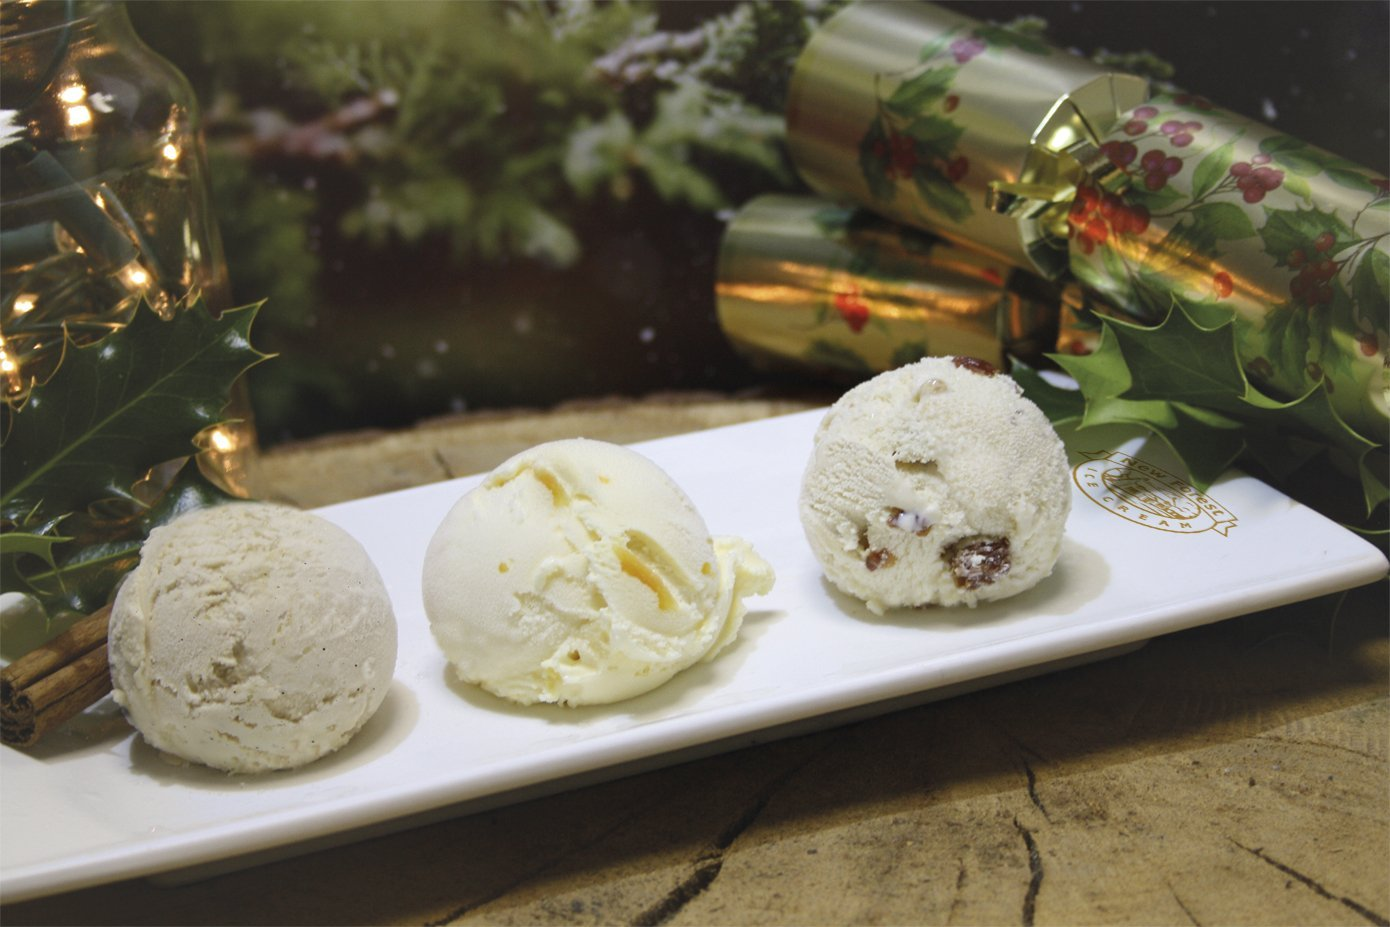 Why Not Try Our Festive Flavours This Christmas